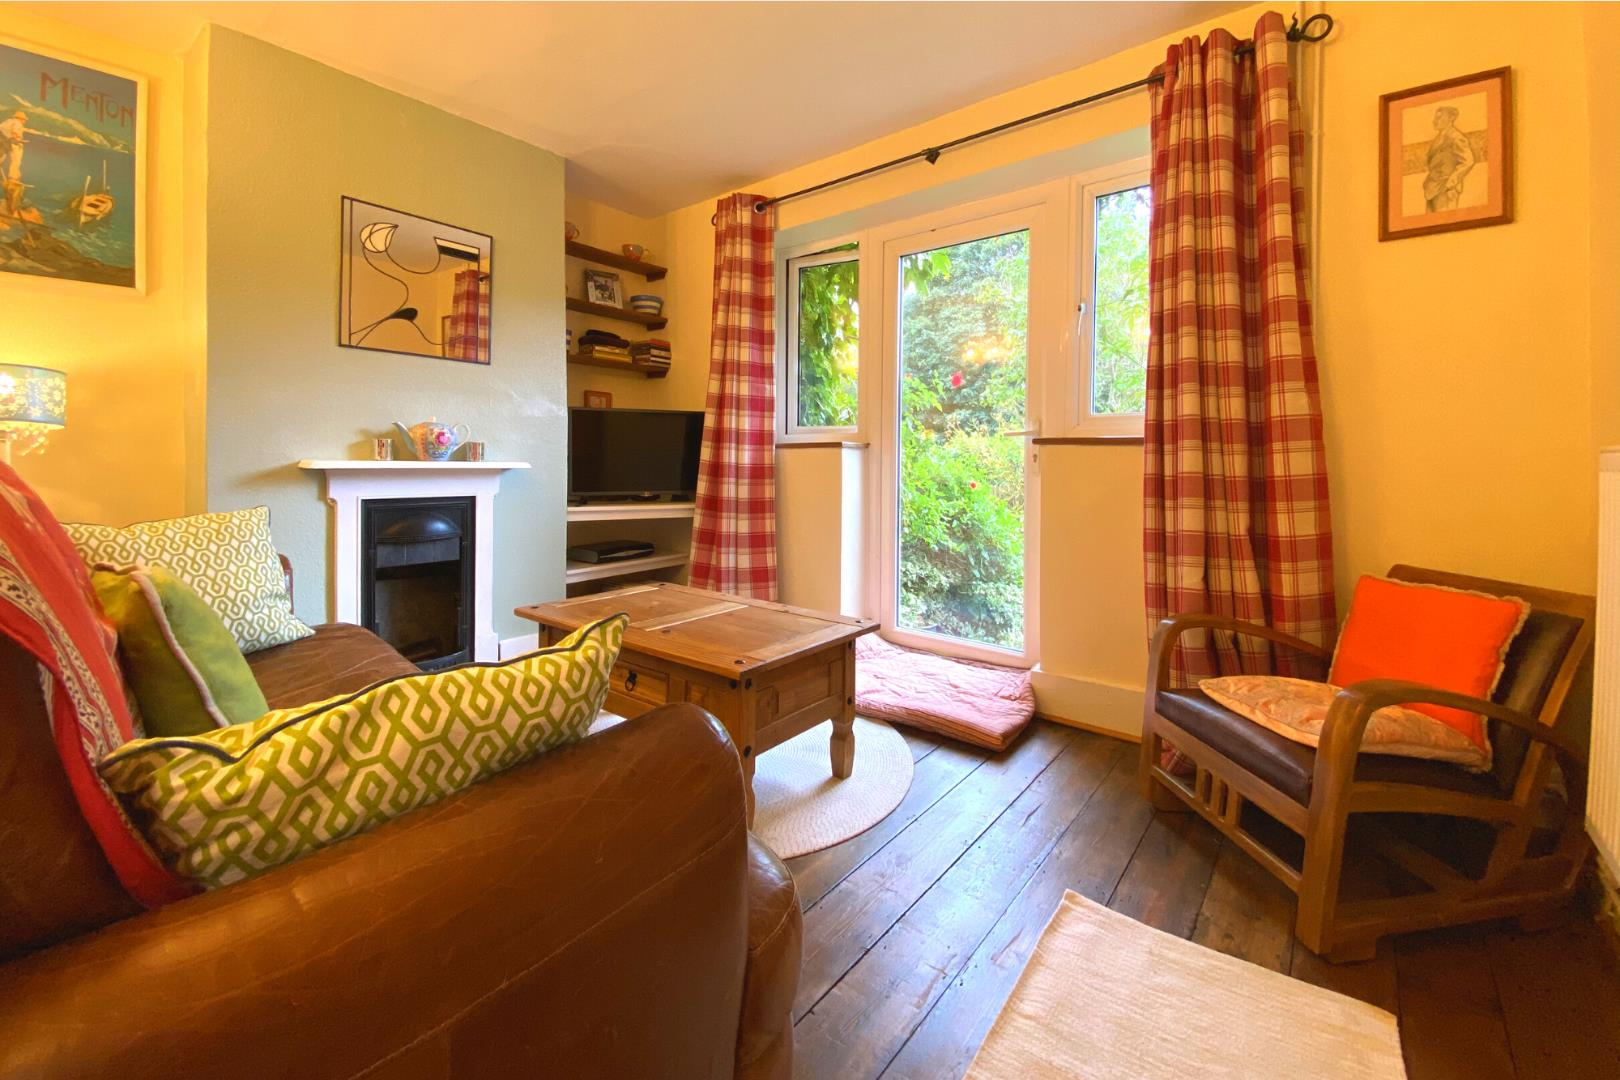 2 bed house for sale in Wonersh 2